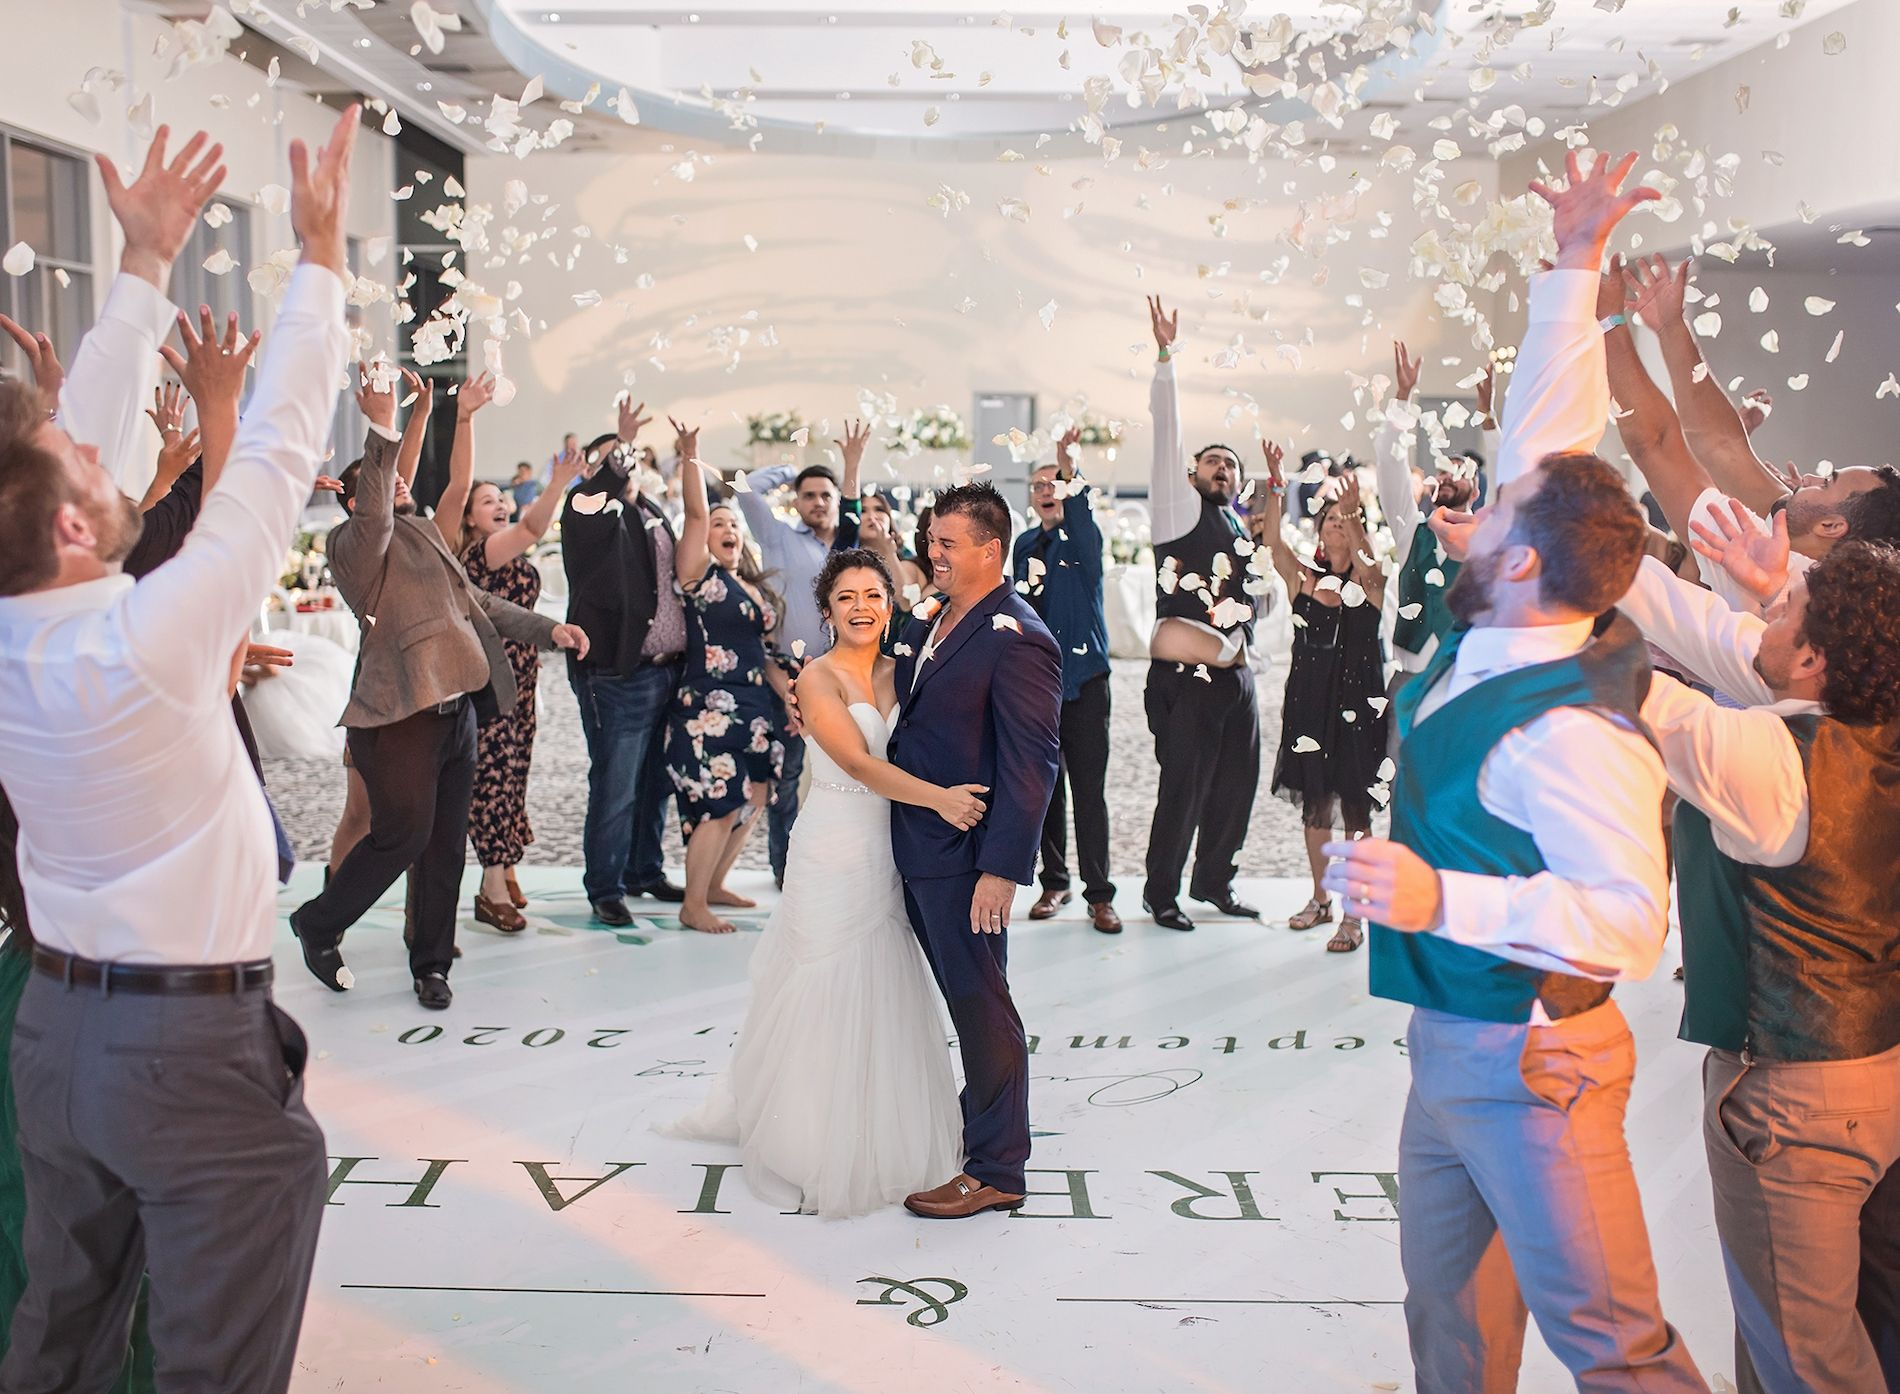 Friends and family circle around the bride and groom on the dance floor and throw white rose petals up in the air towards them to celebrate.